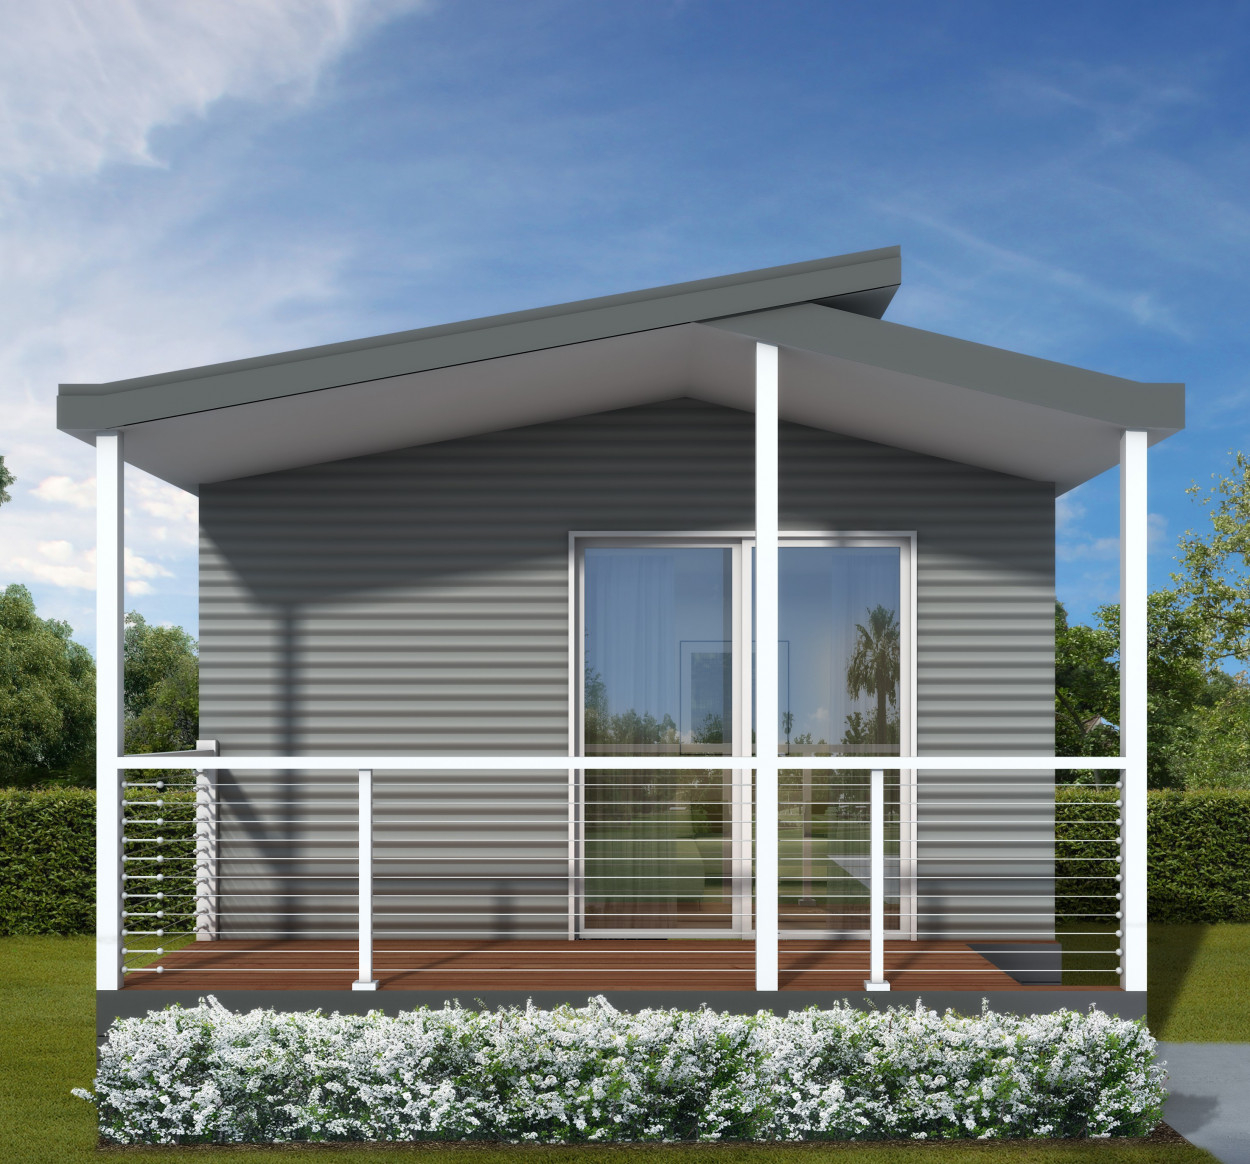 Pier Road - Grantville, VIC - For Sale